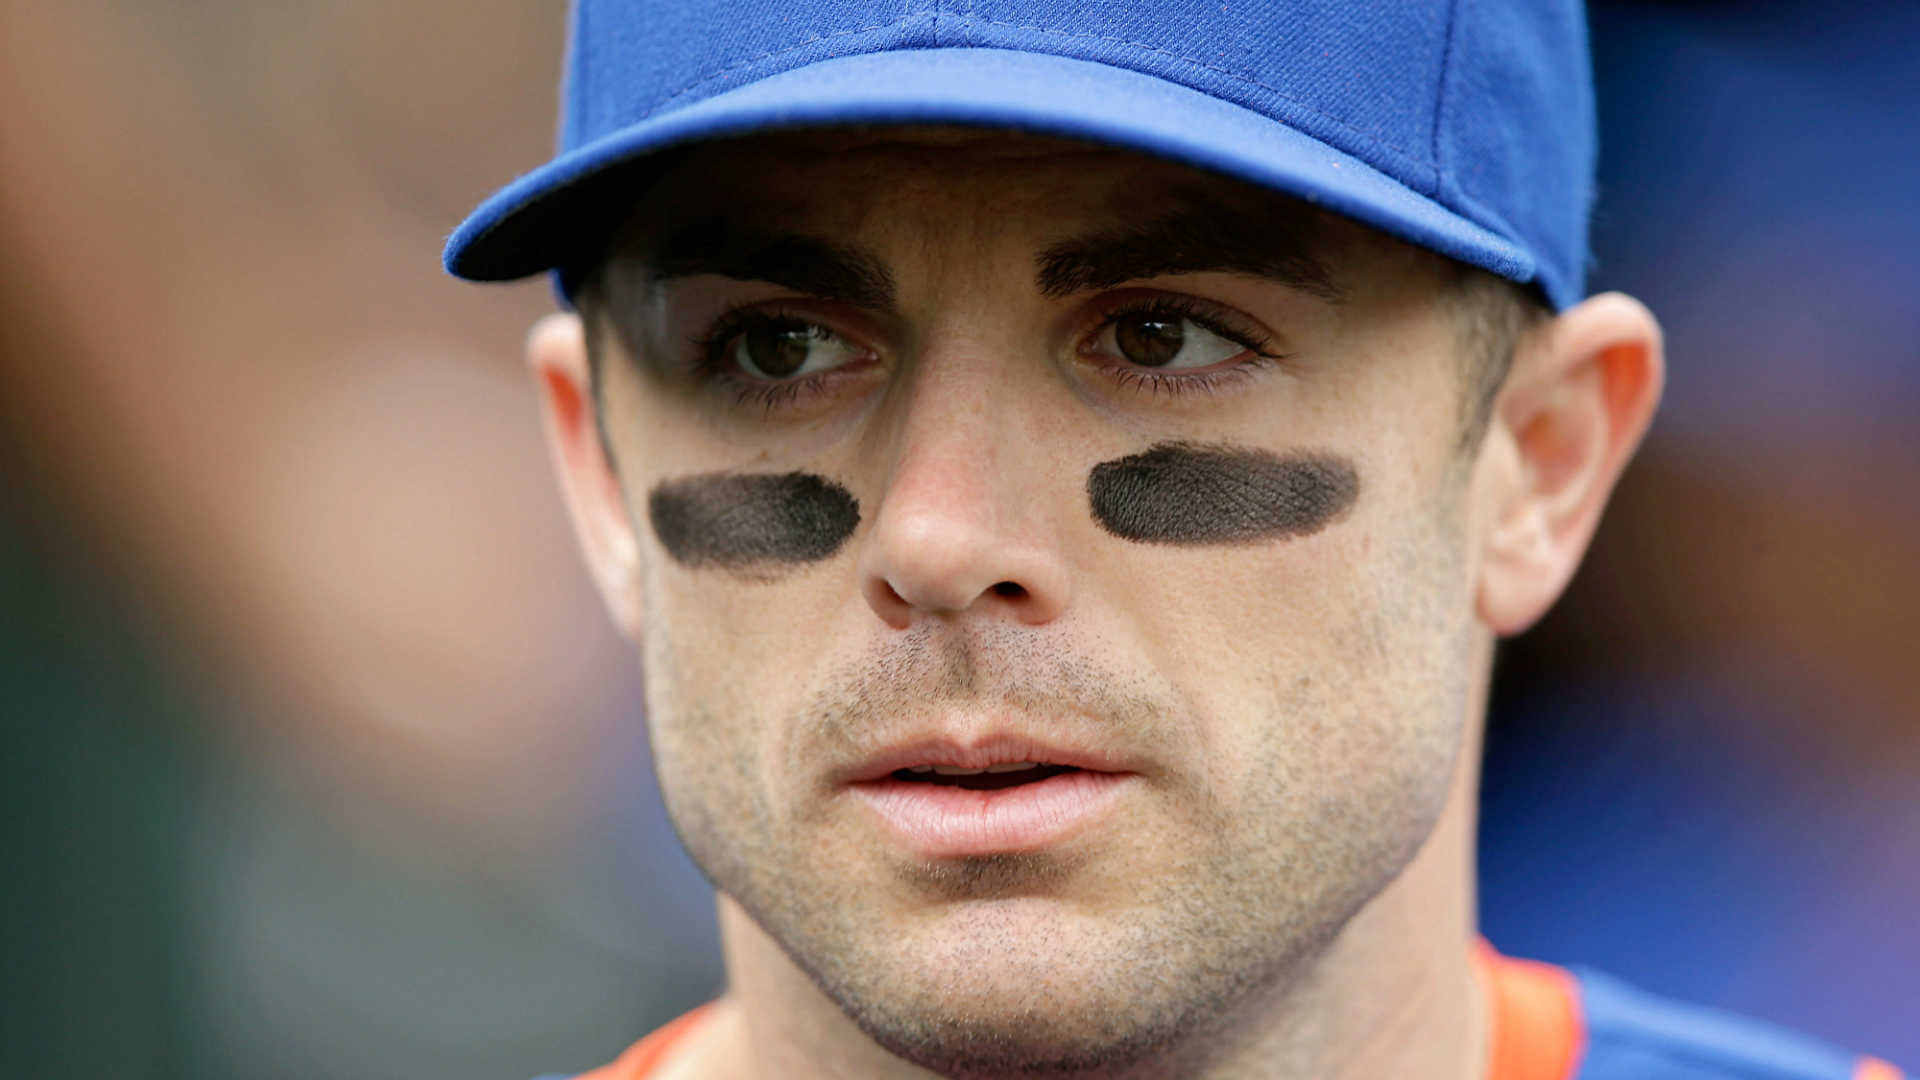 David-Wright-091014-Getty-FTR.jpg